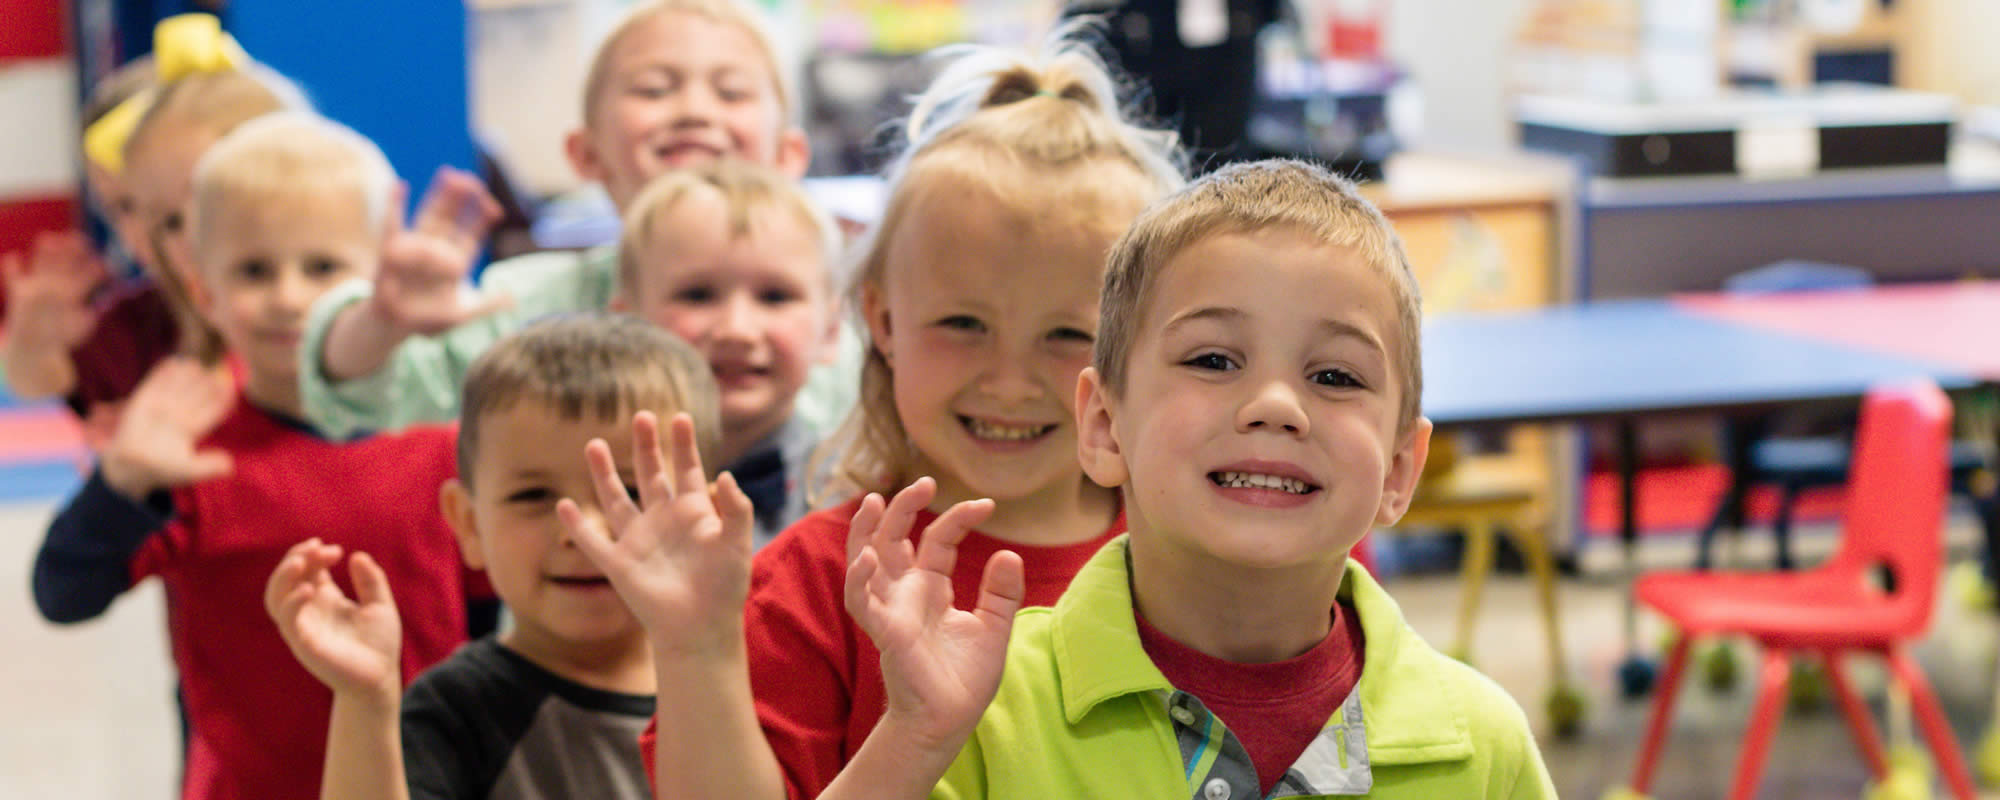 Early Childhood Development - Joplin Area Catholic Schools